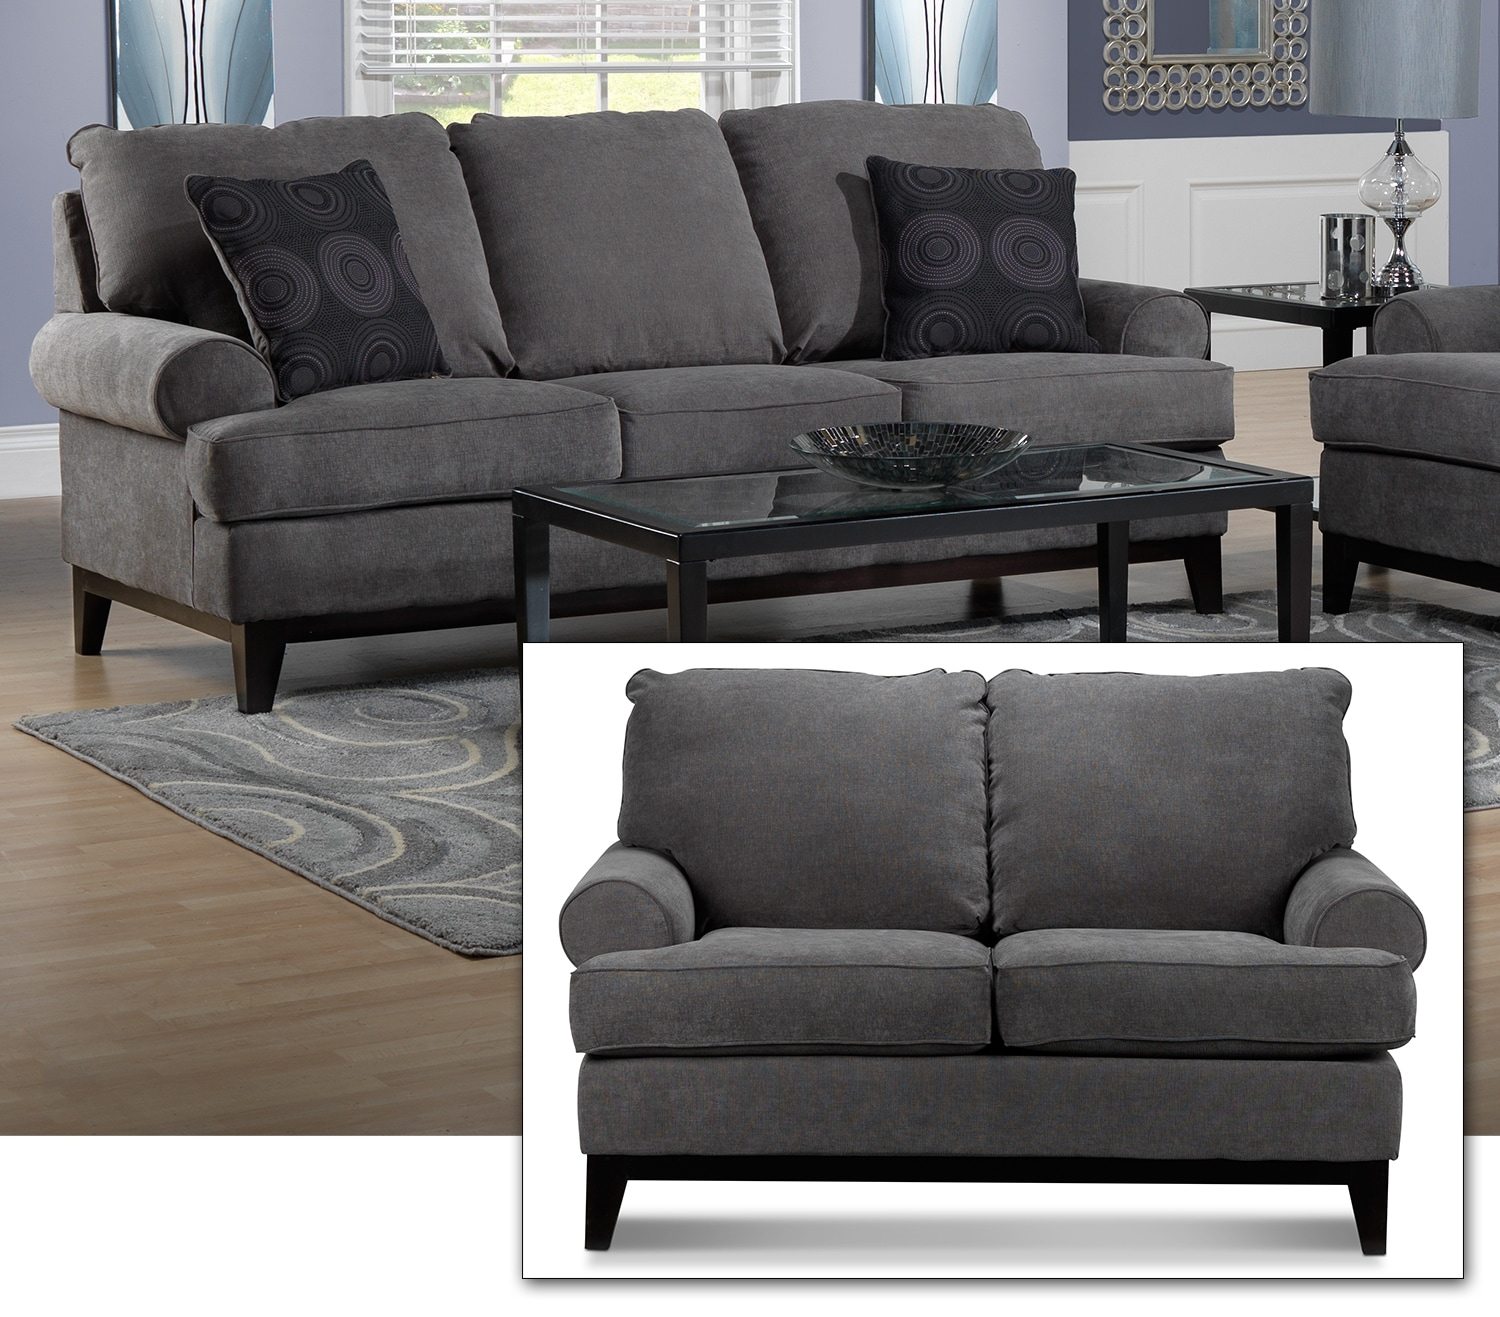 Crizia Sofa and Loveseat Set - Dark Grey